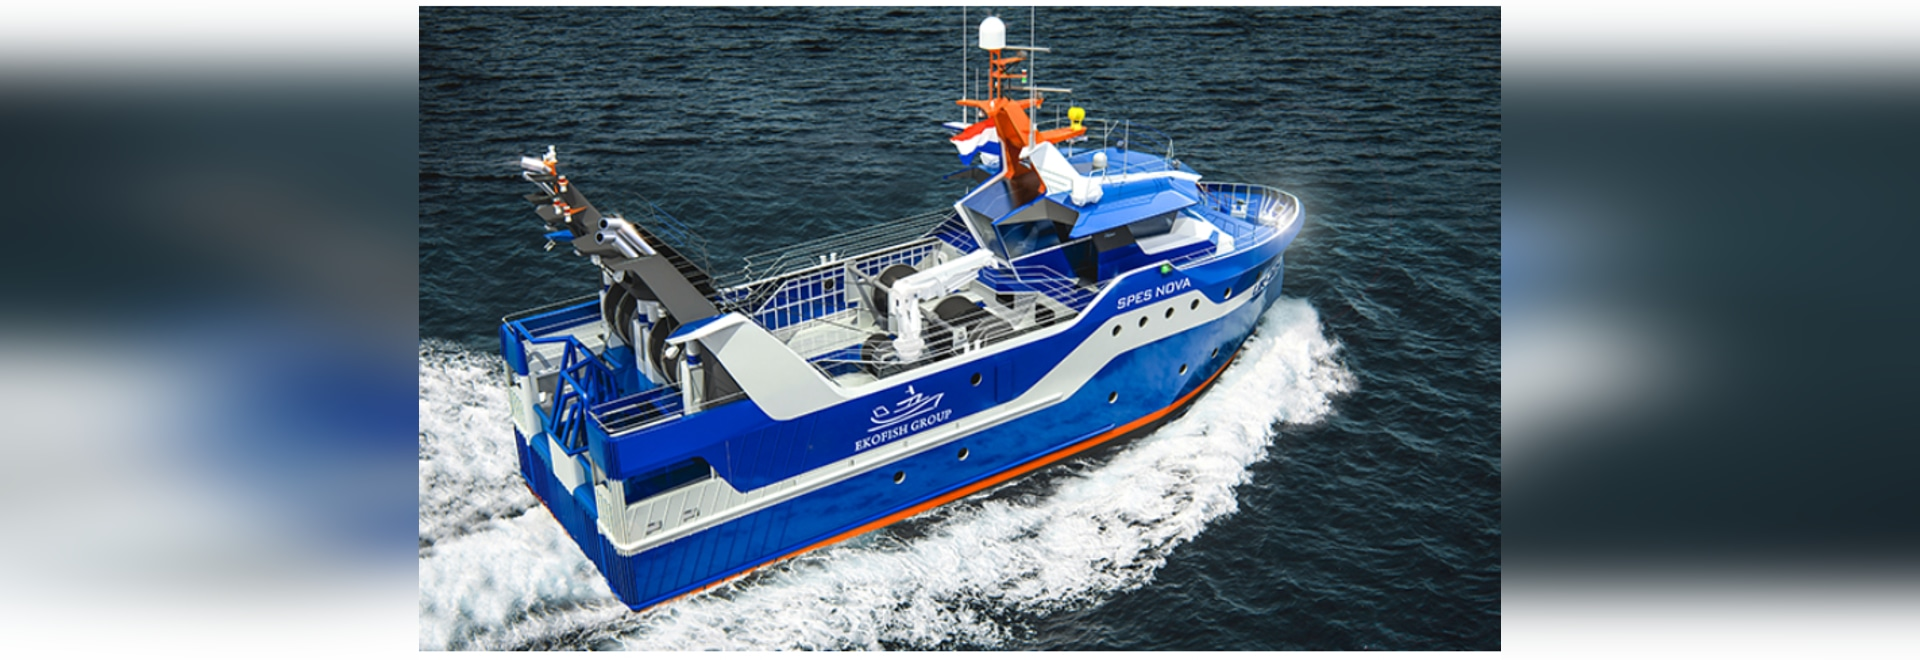 Suppliers of Ekofish's new diesel-electric fishing vessel announced